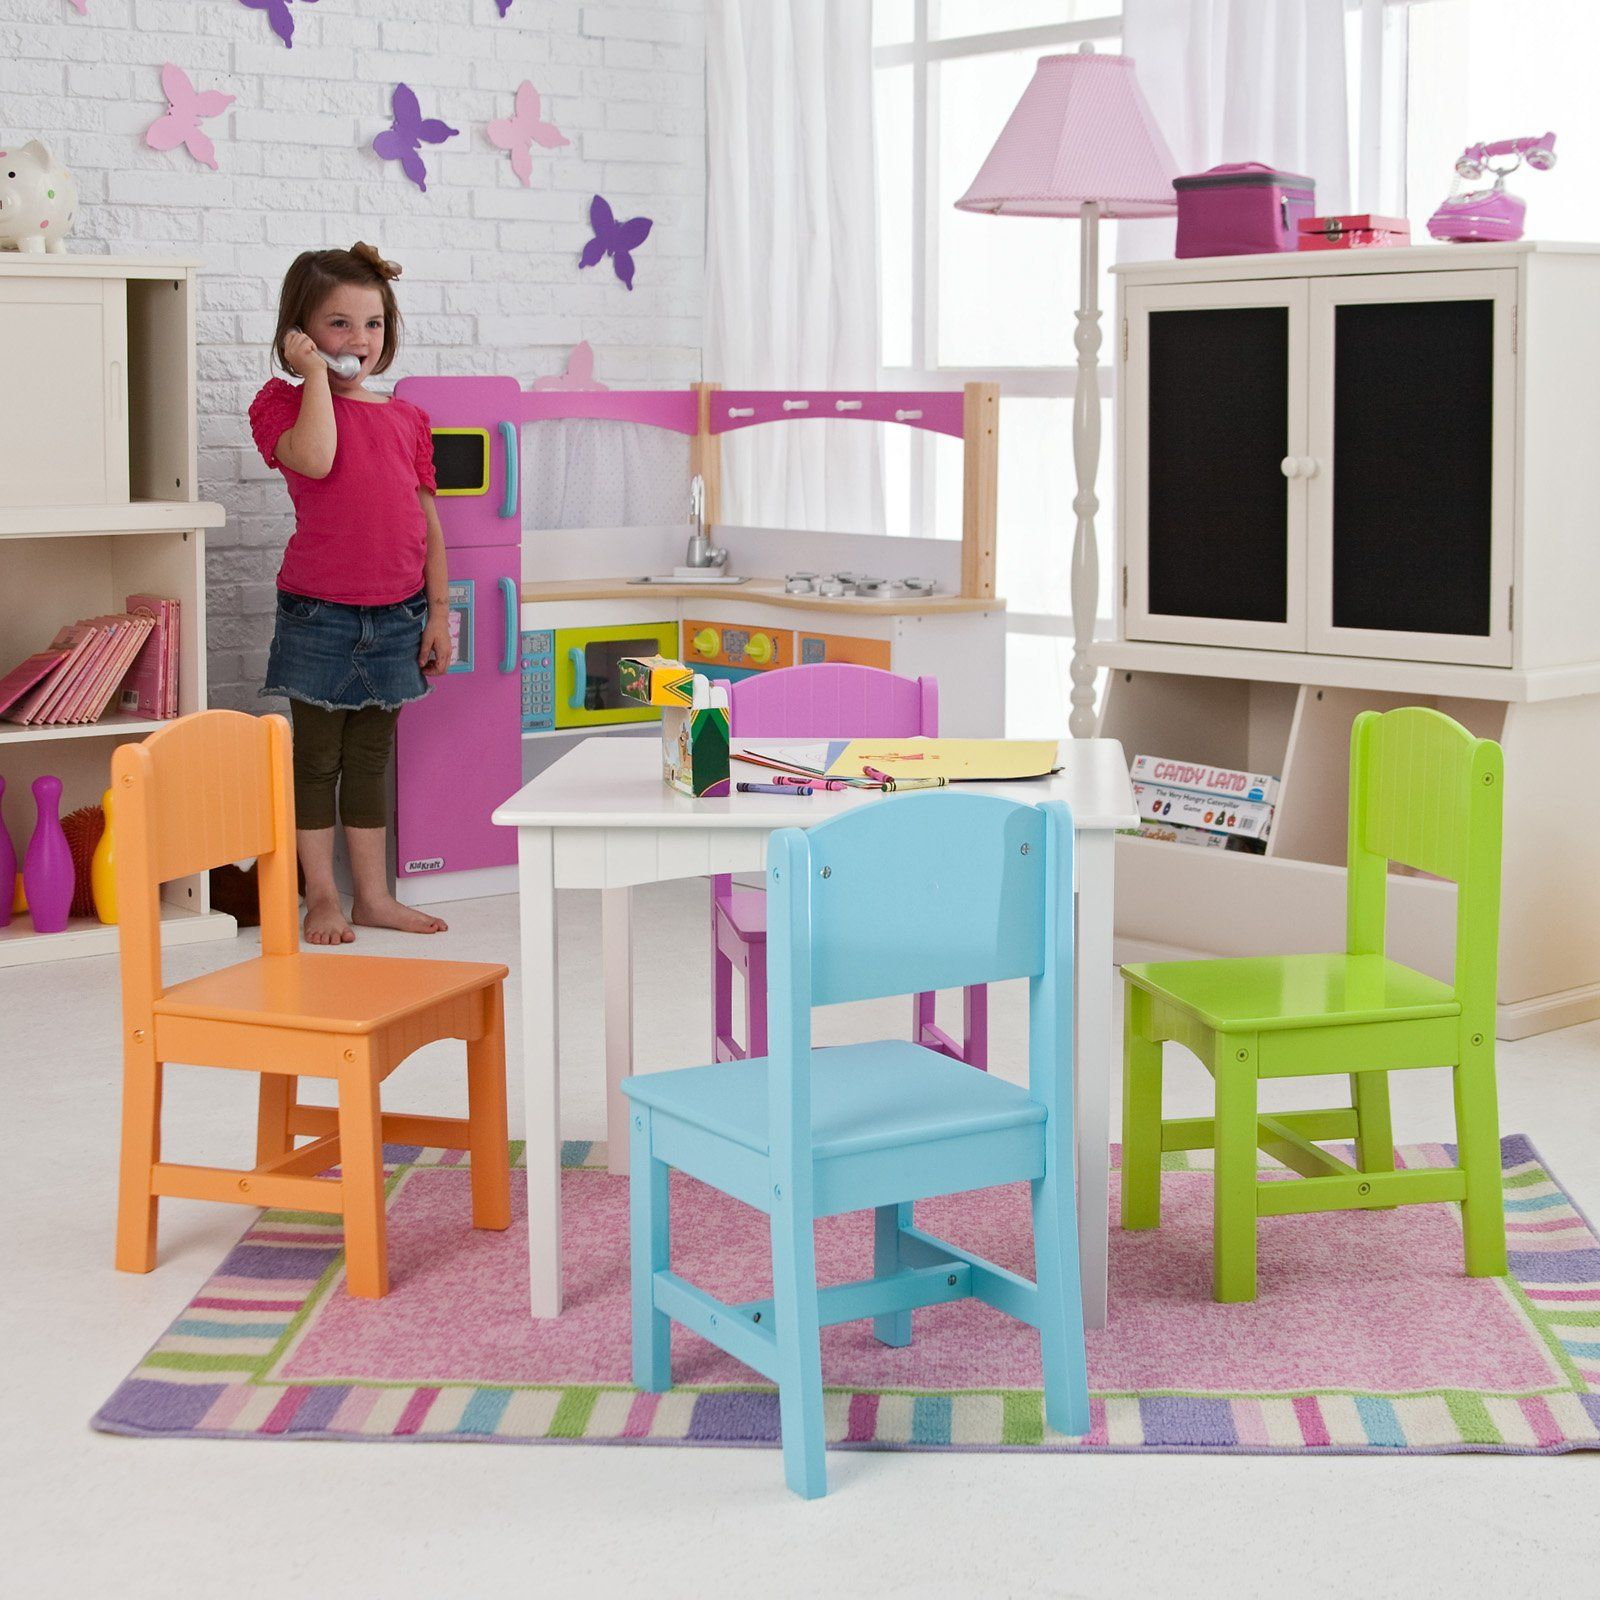 KidKraft Nantucket Big N Bright Table and Chair Set Go bold or